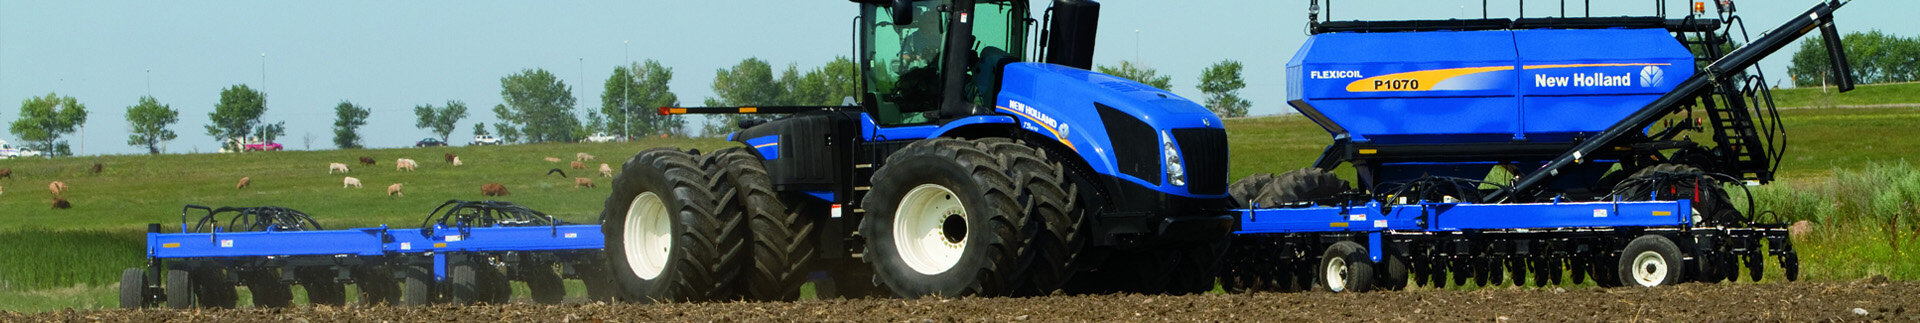 New Holland Tractors & Telehandlers | New Holland TK4000 Crawler